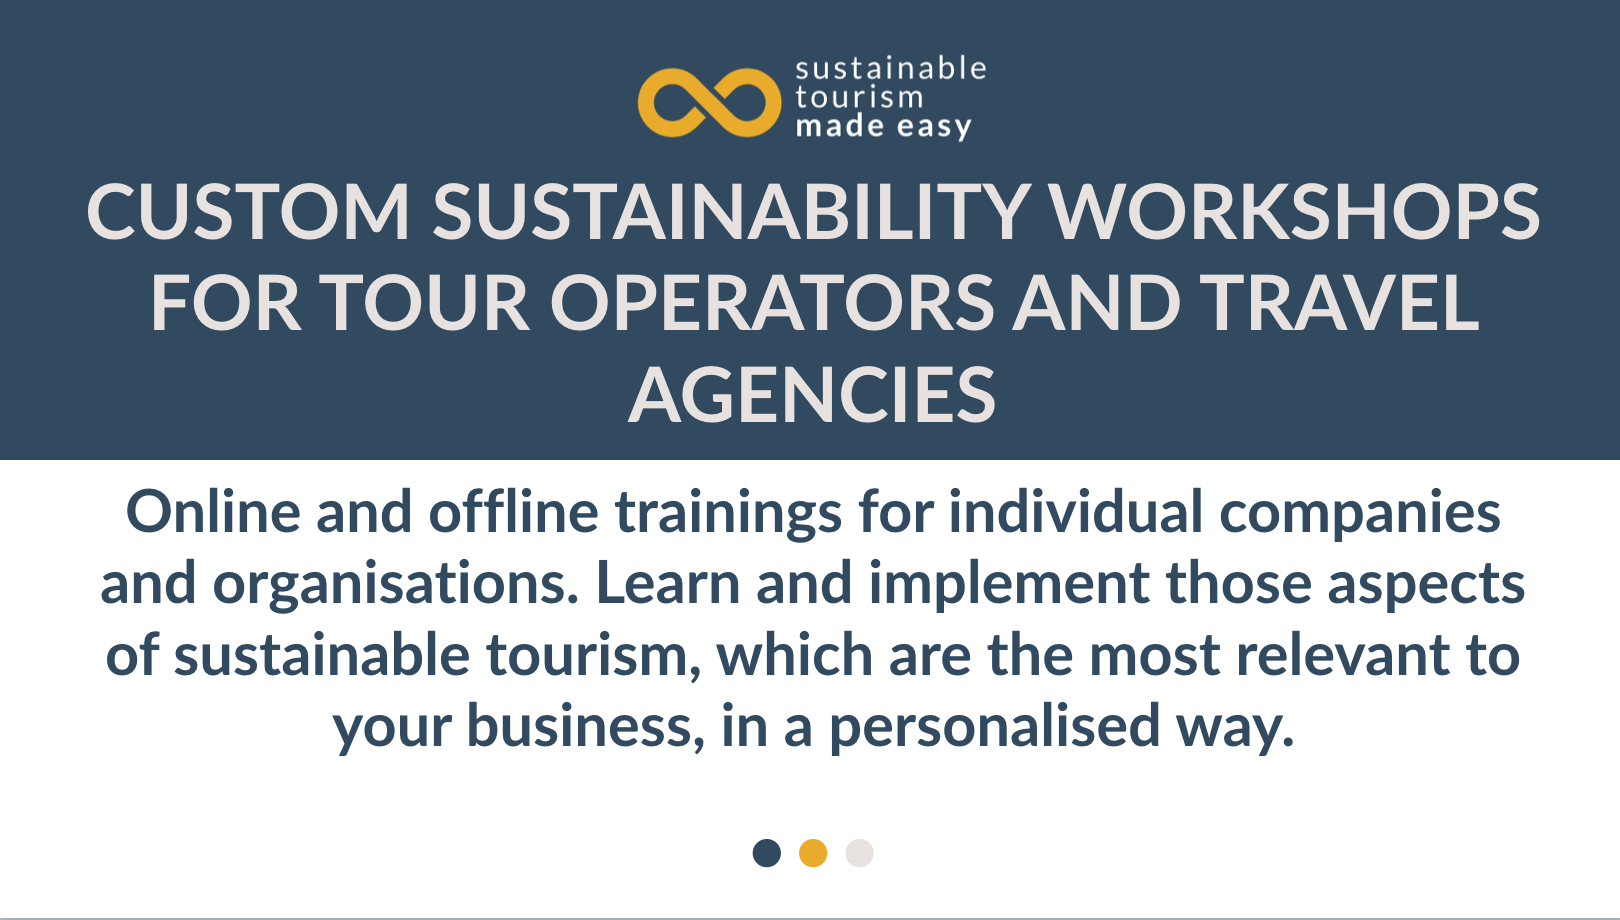 Custom sustainability workshops for tour operators and travel agencies